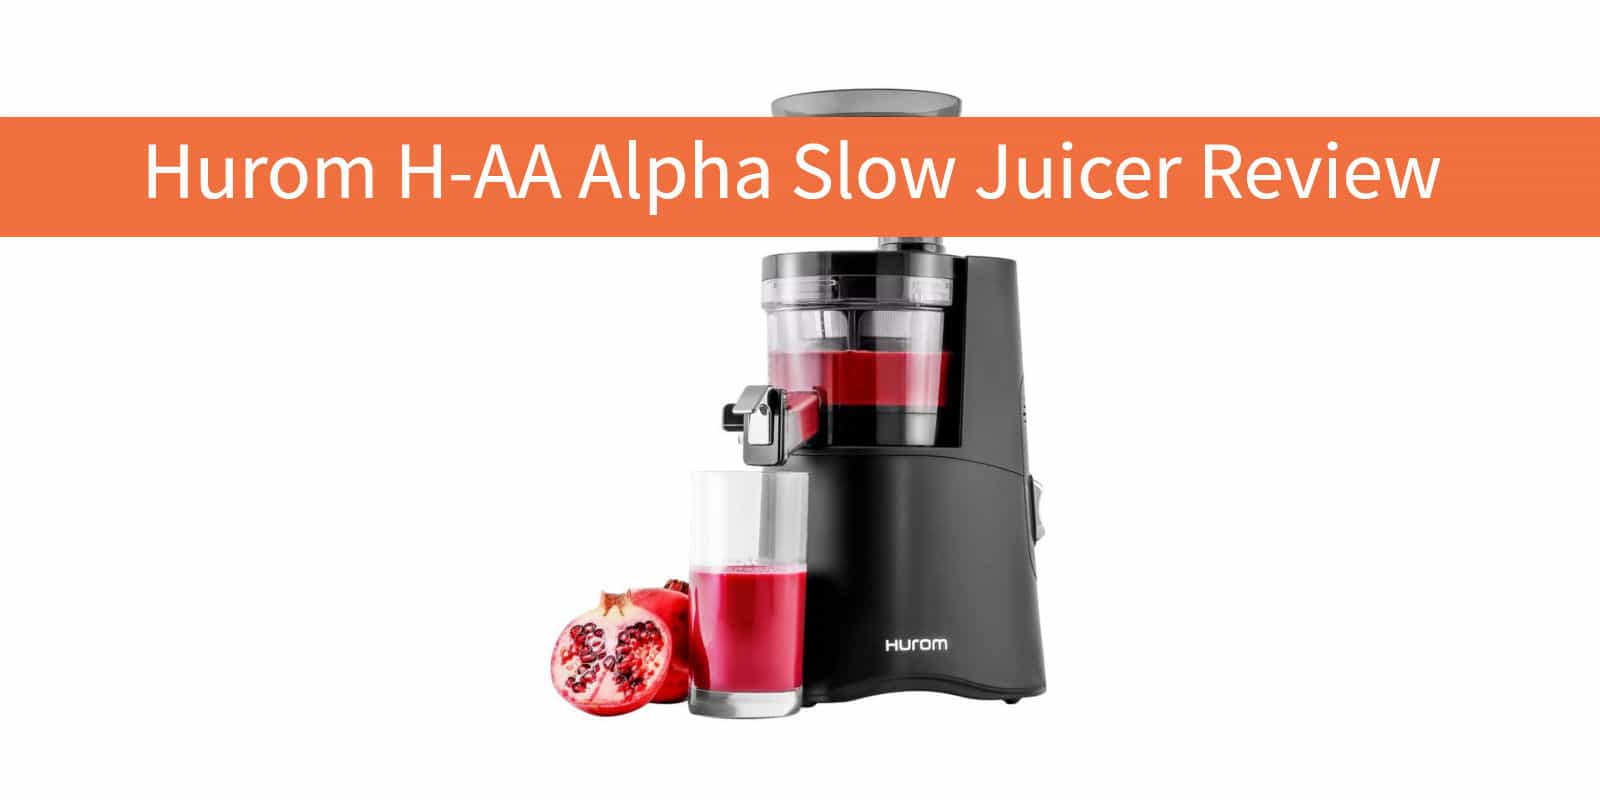 Best Slow Juicers 2018 : Hurom H-AA Alpha Slow Juicer Review (2018) vegByte